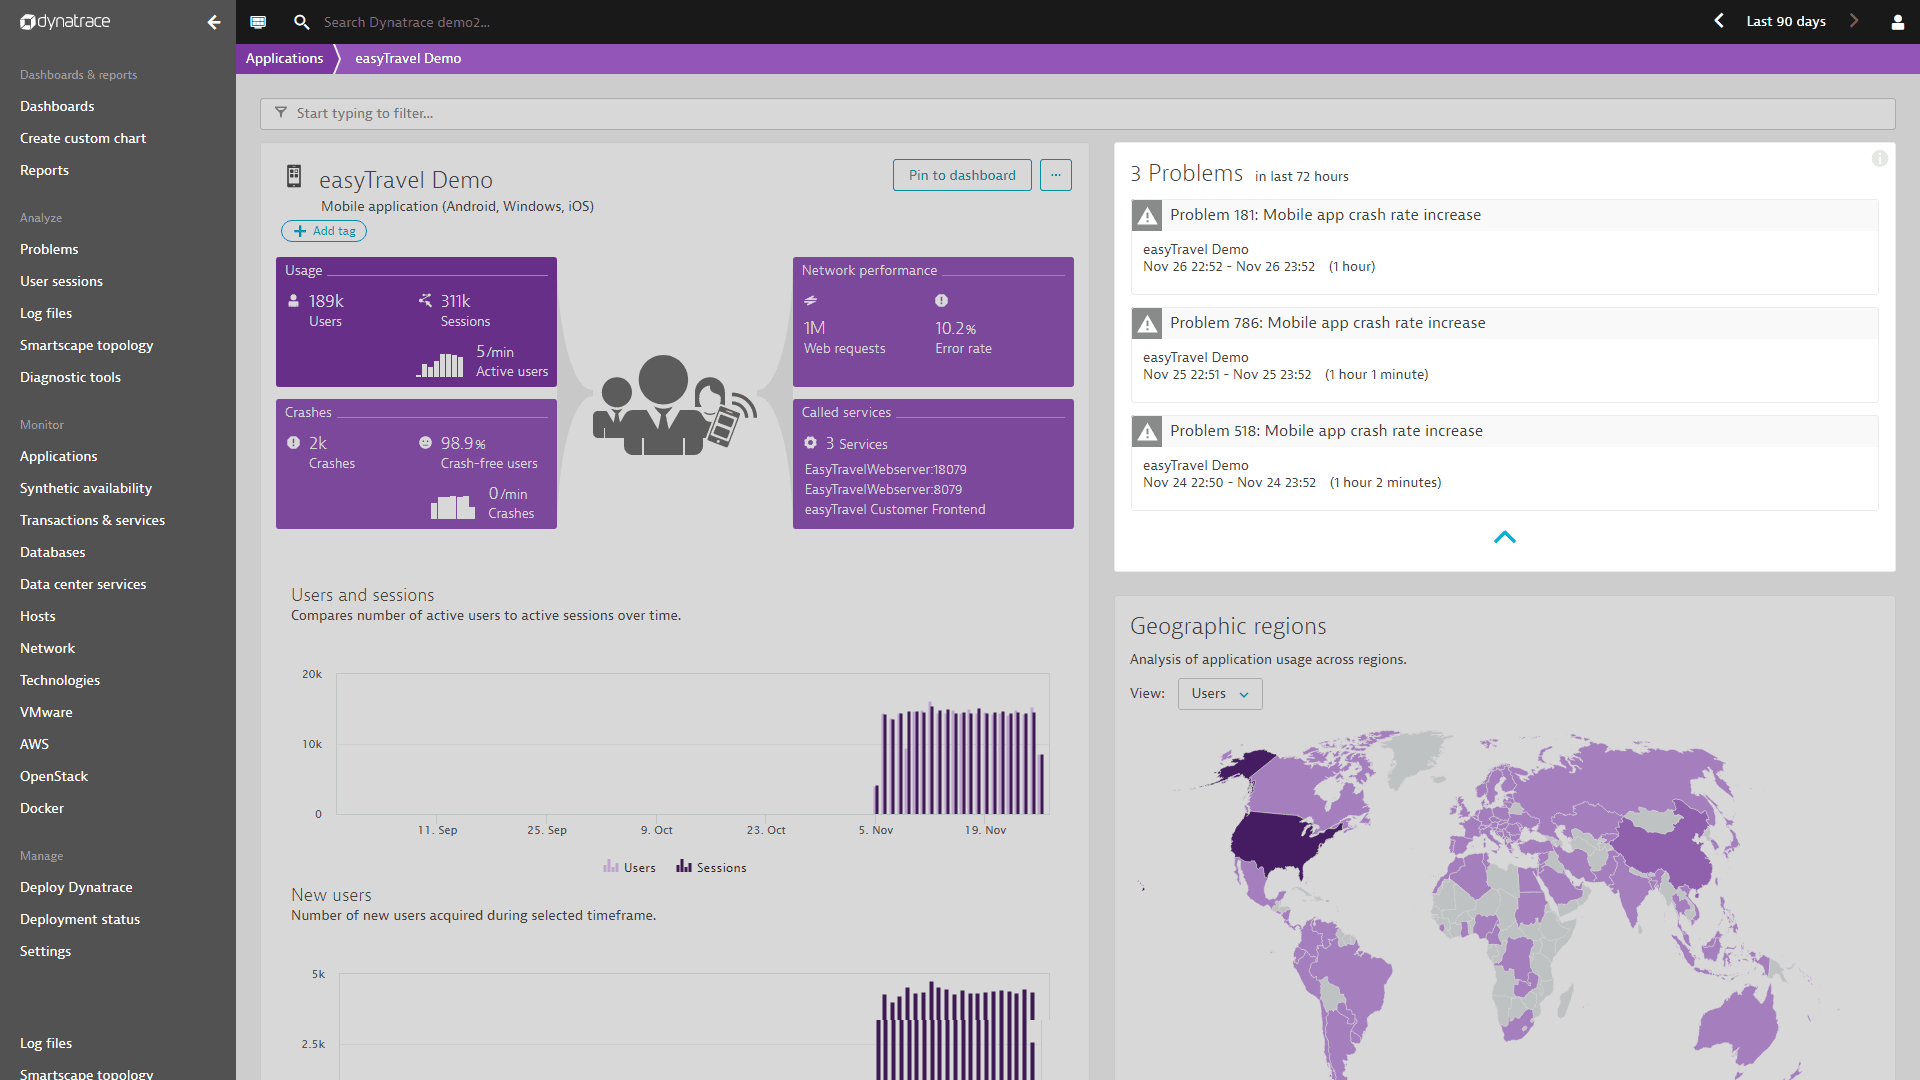 Dynatrace shows problems and affected users